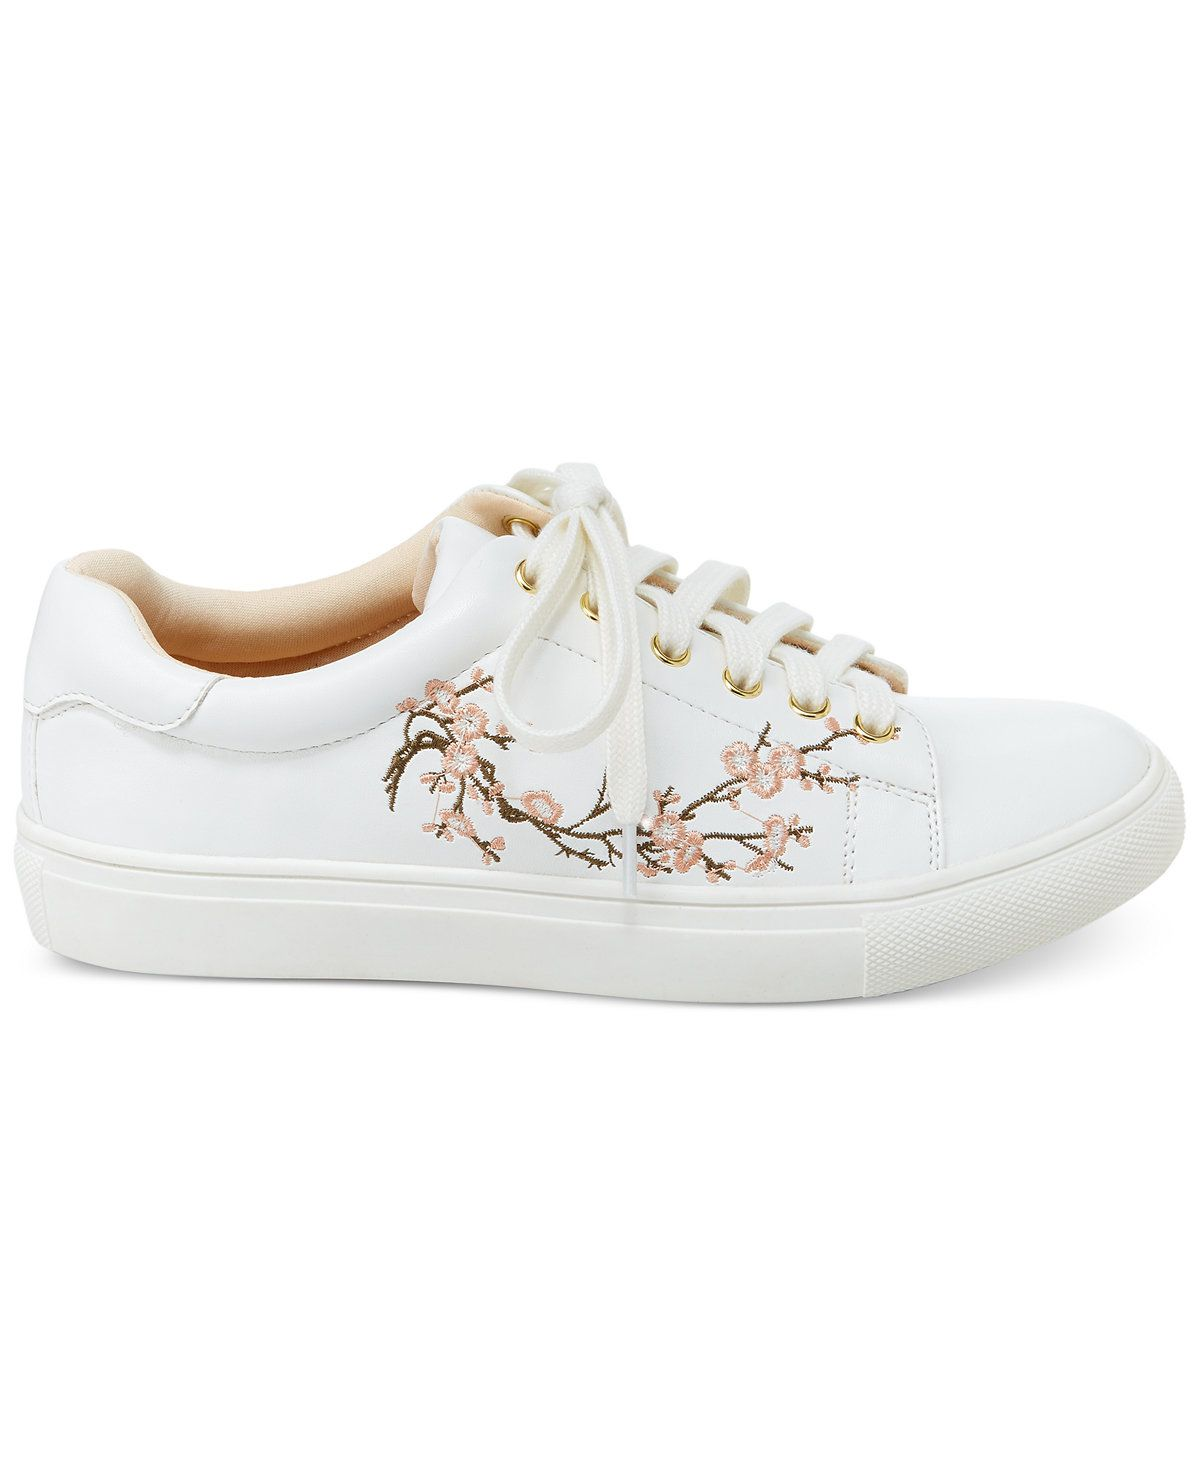 83adb6575a7476 Nanette by Nanette Lepore Winona Blossom Lace-Up Sneakers - Sneakers -  Shoes - Macy s